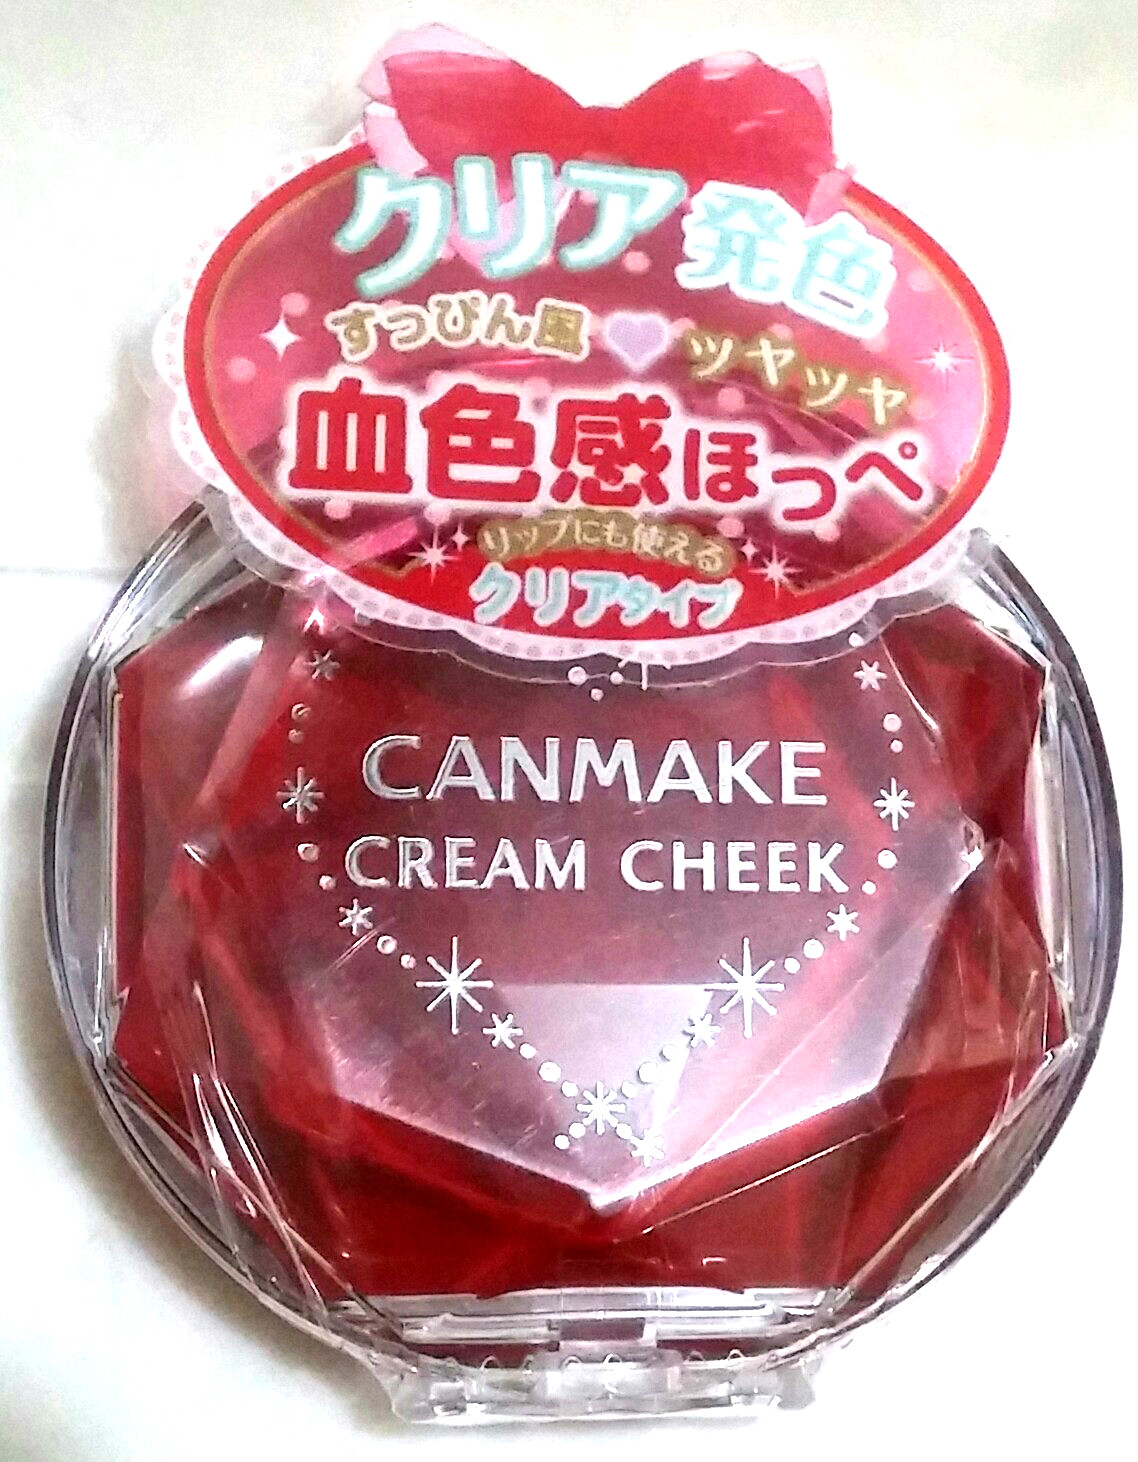 Wateryscenery Canmake Cream Cheek Cl07 Clear Ruby Cherry Jill Beauty Lip Matte 13 Purplish Plum On Official Site The Color Looks Like See My Wall Post Picture Above But Truthfully It Is More Red Than Purple Maybe A Berry